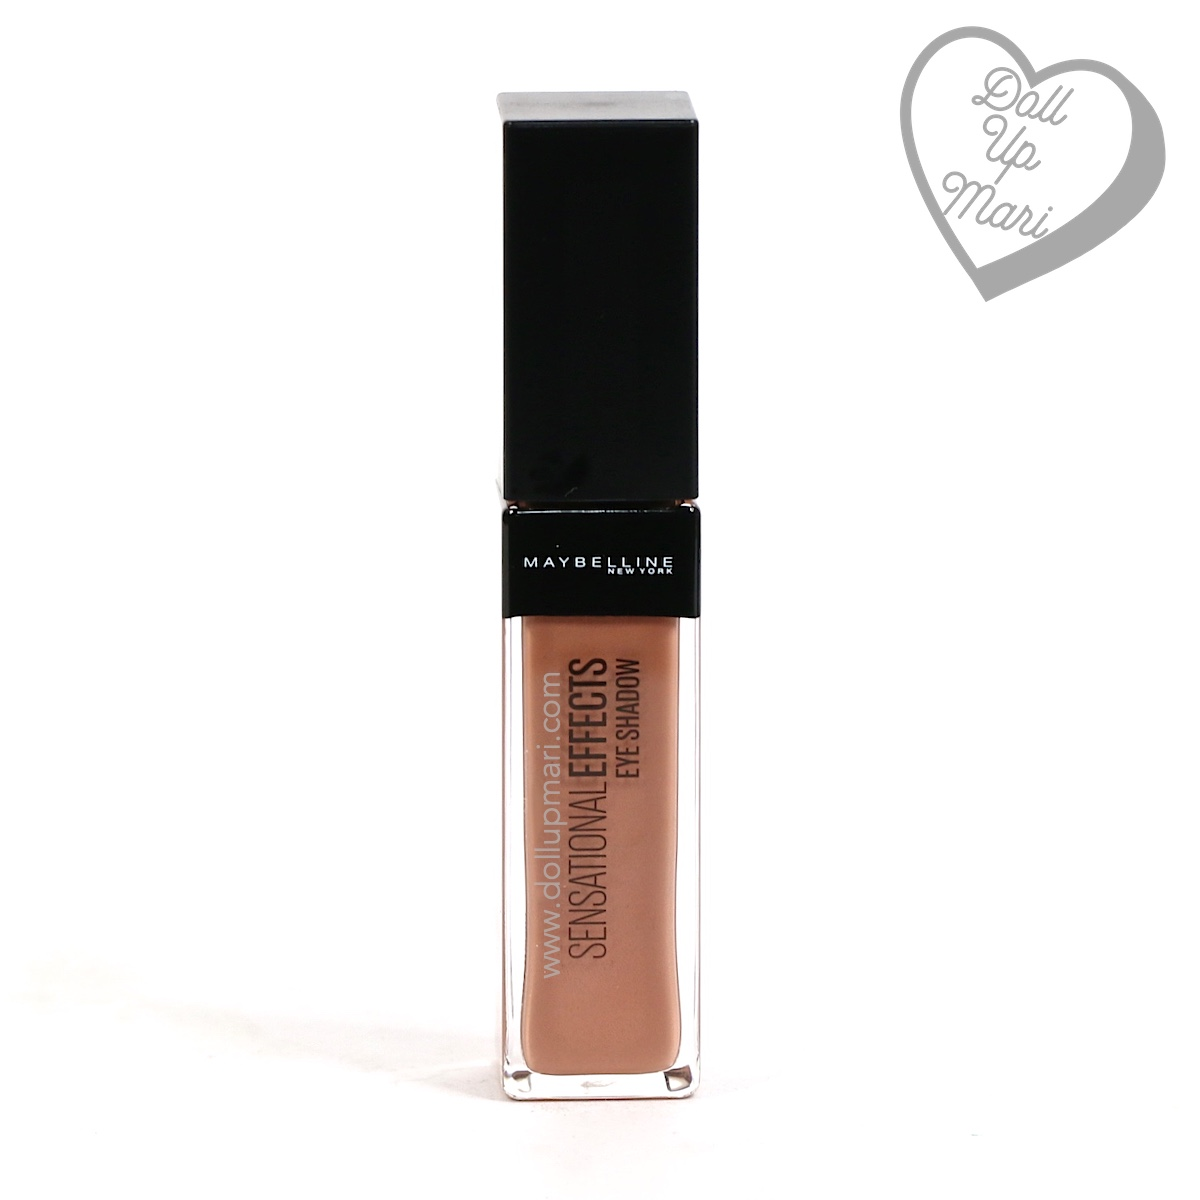 Maybelline Sensational Effects Liquid Eyeshadow M02 Clay-zy In Love Pack Shot